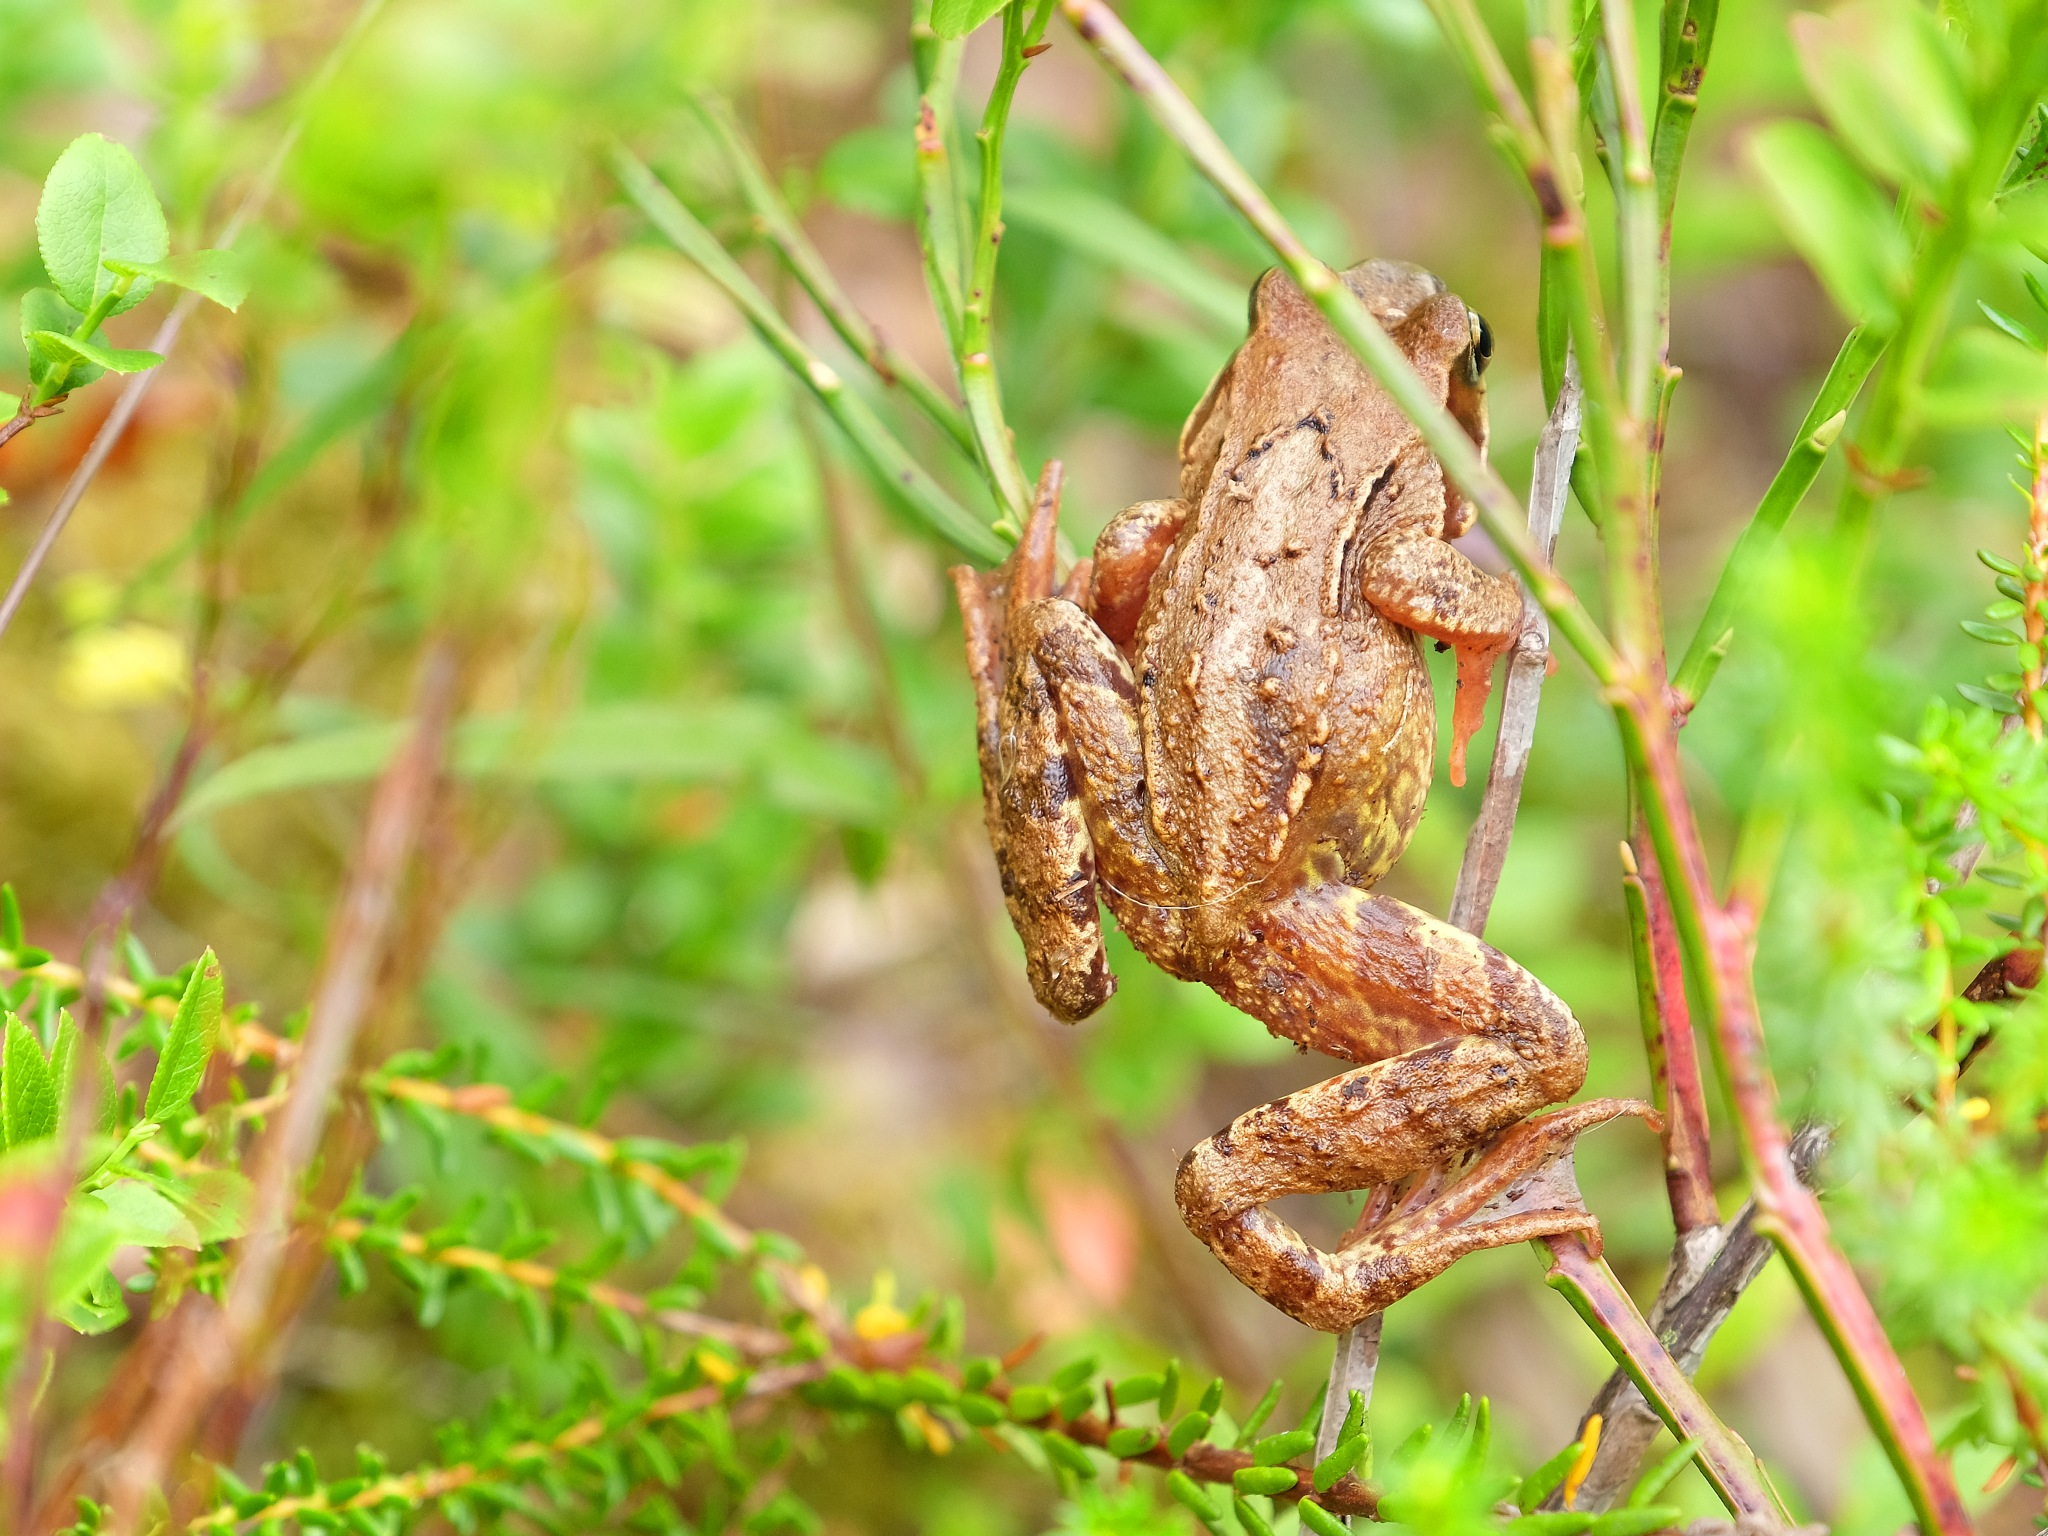 Climbing Frog by Jan Arvid Solem